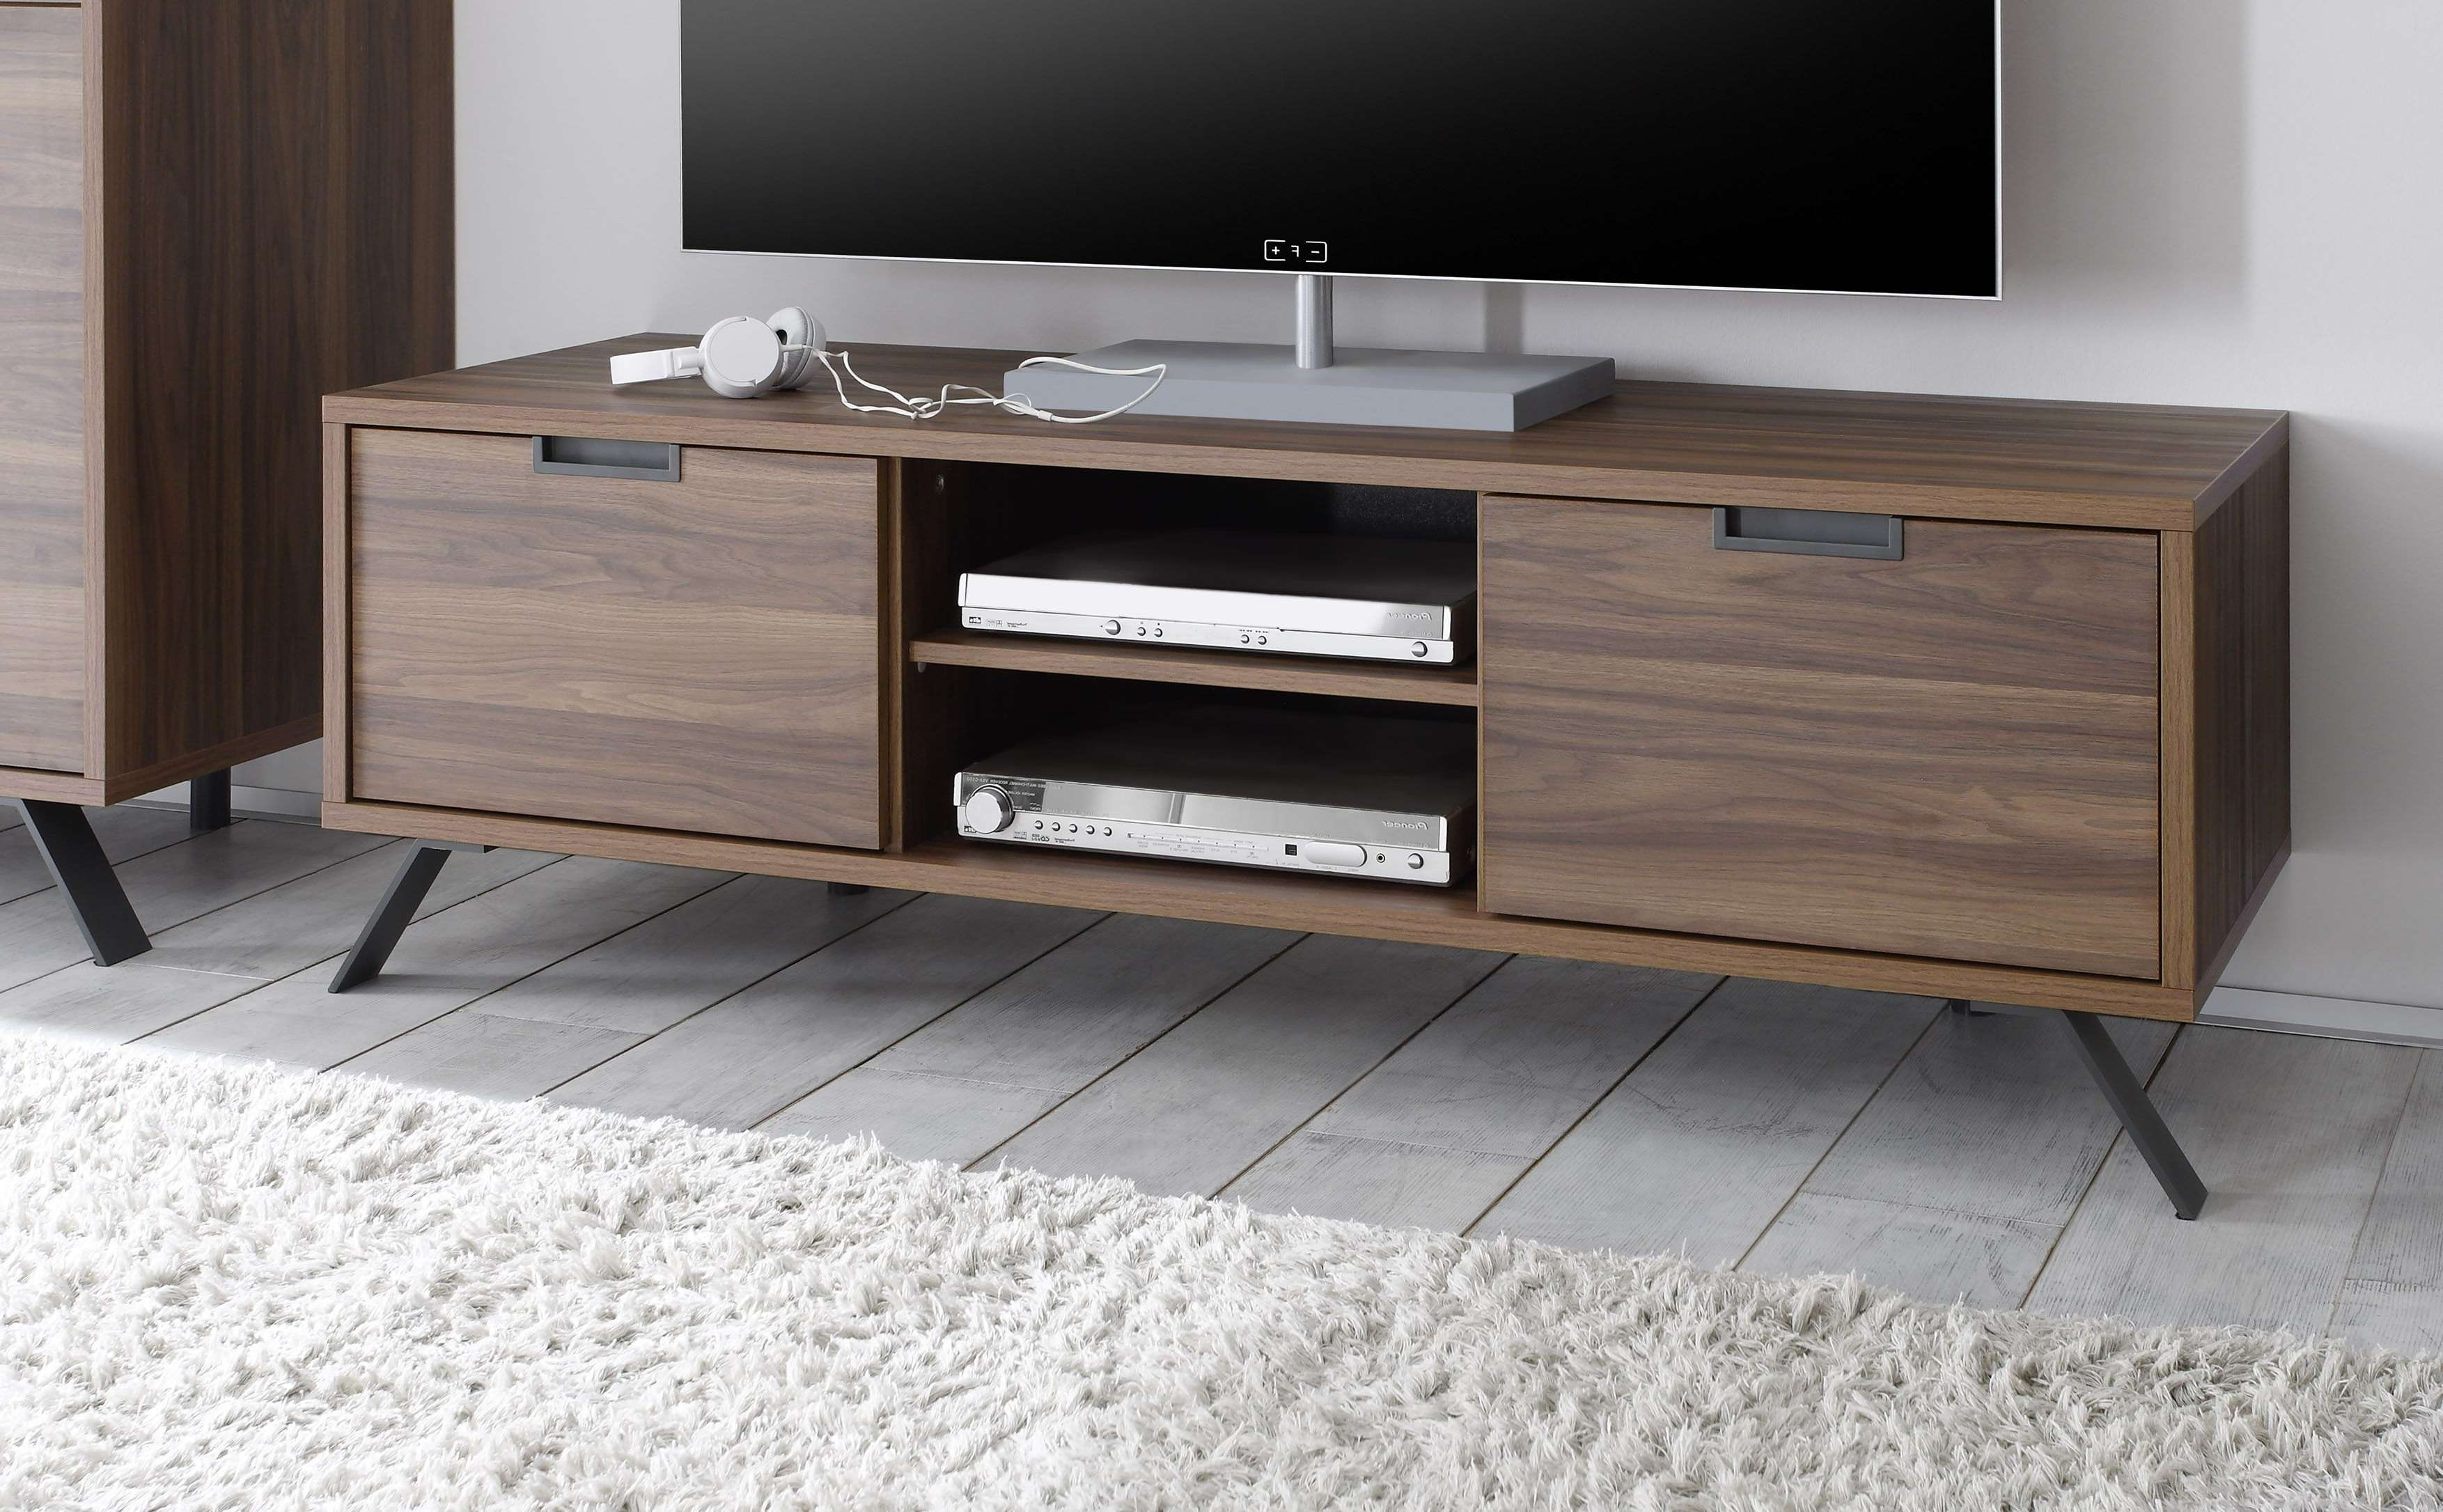 Palma Tv Stand, Walnut Buy Online At Best Price – Sohomod For Walnut Tv Stands (View 10 of 15)